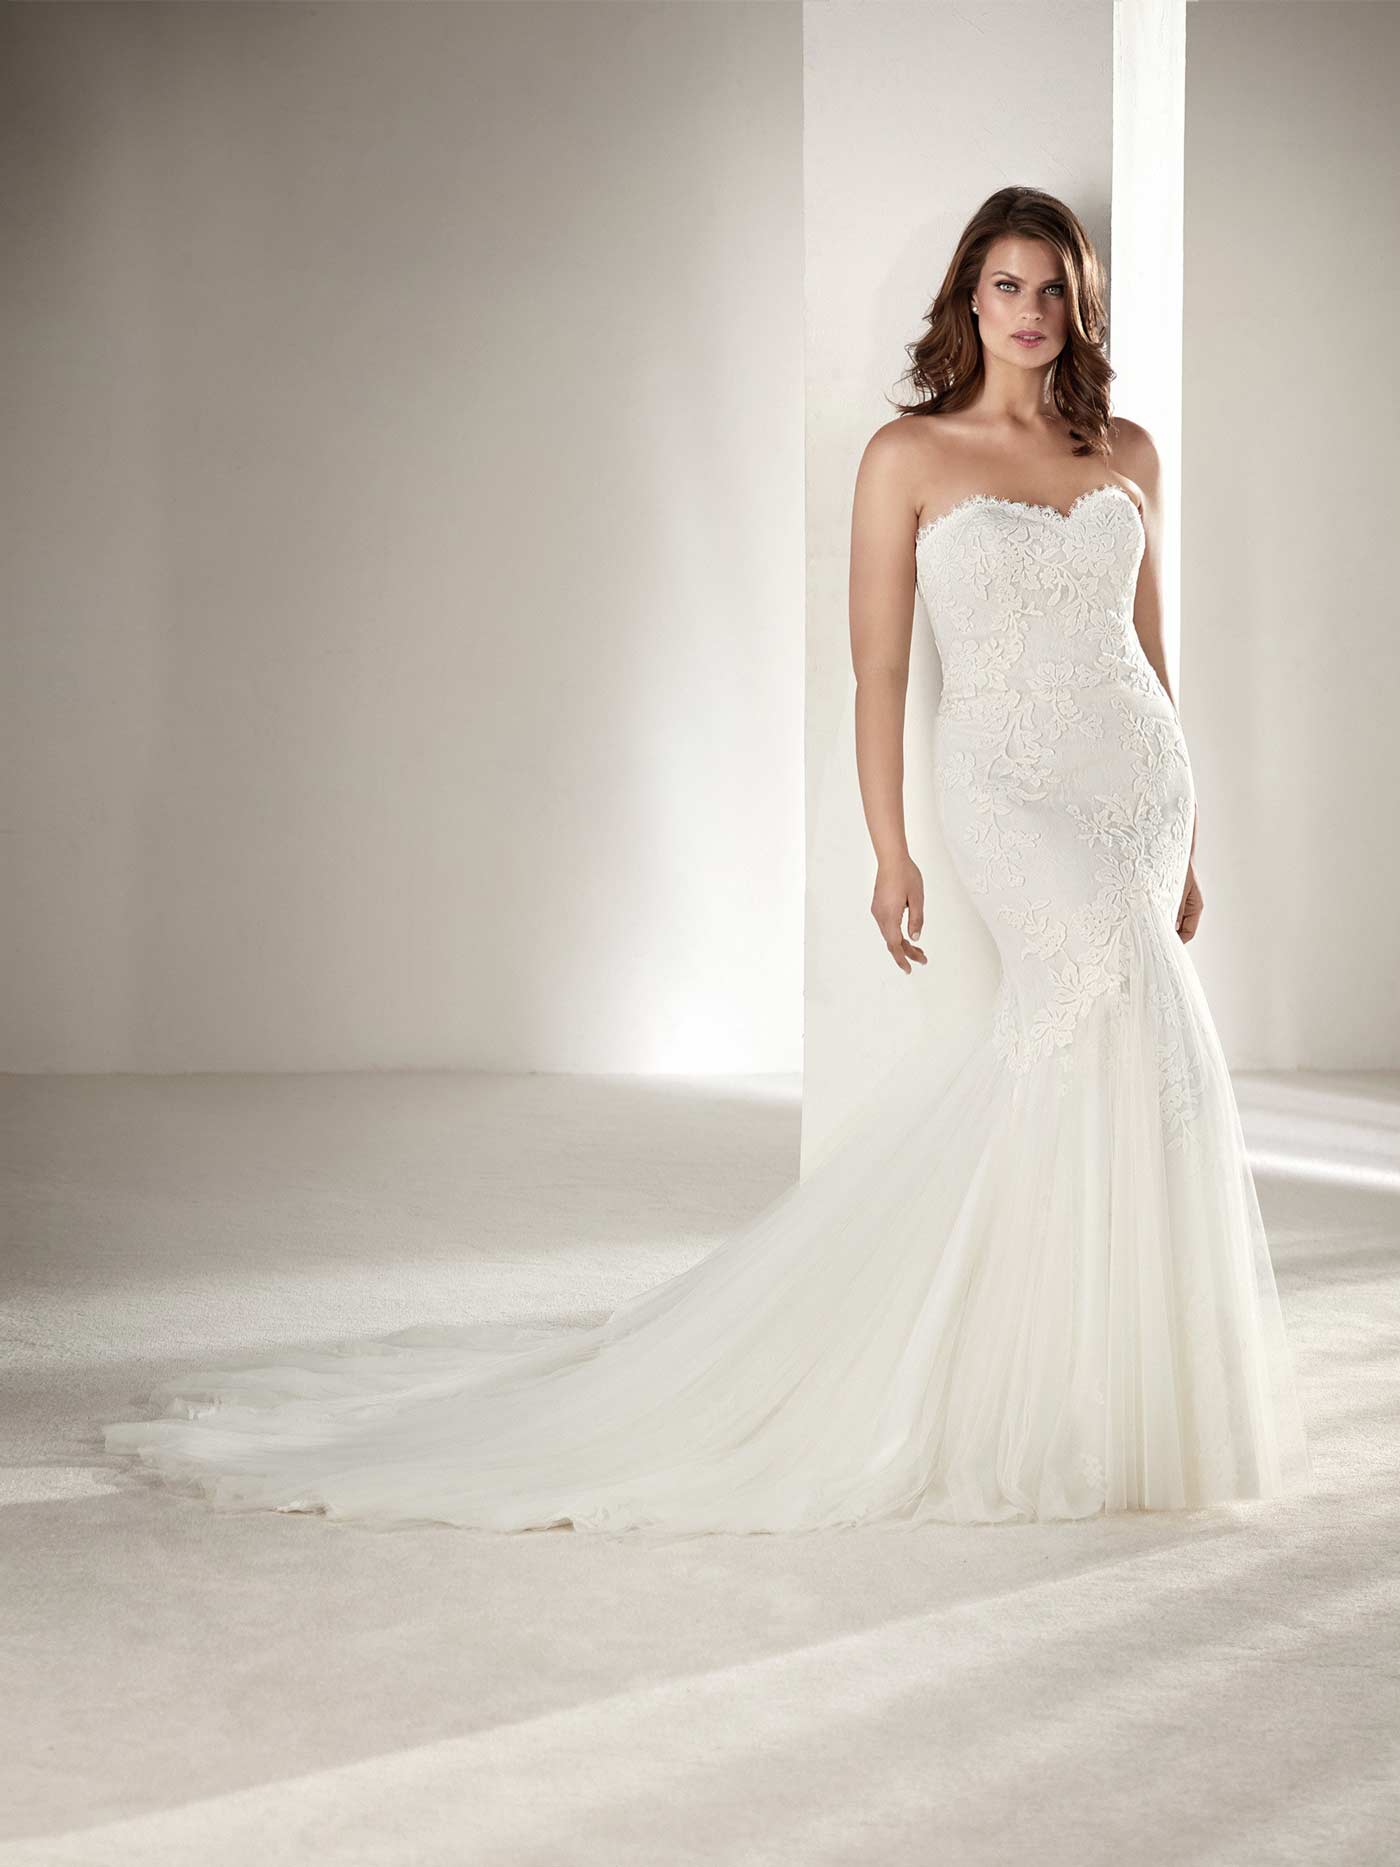 drimea-plus-size-wedding-dress-pronovias-melbourne-raffaele-ciuca